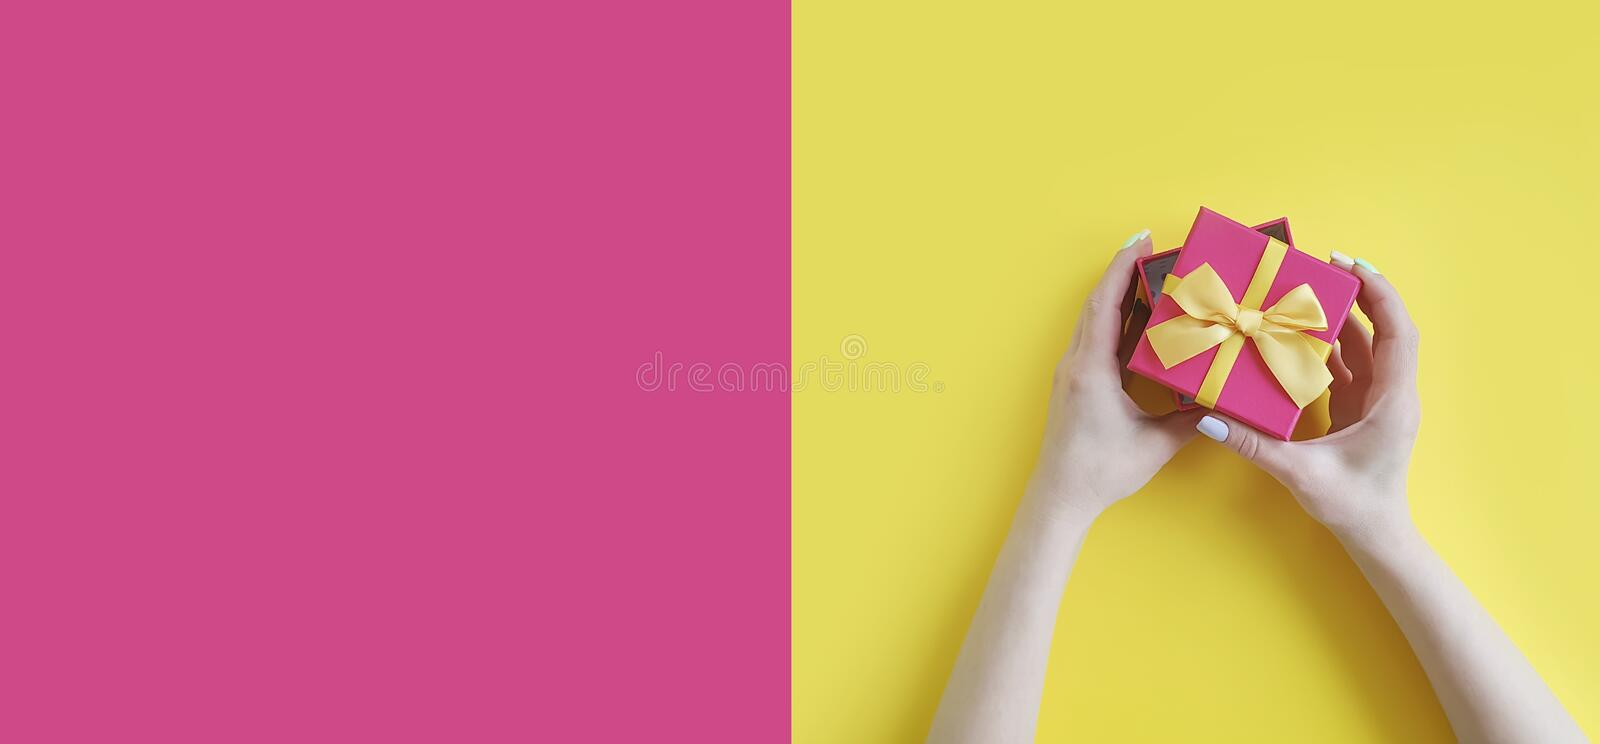 Female hands holding a gift box birthday on a colored background royalty free stock image